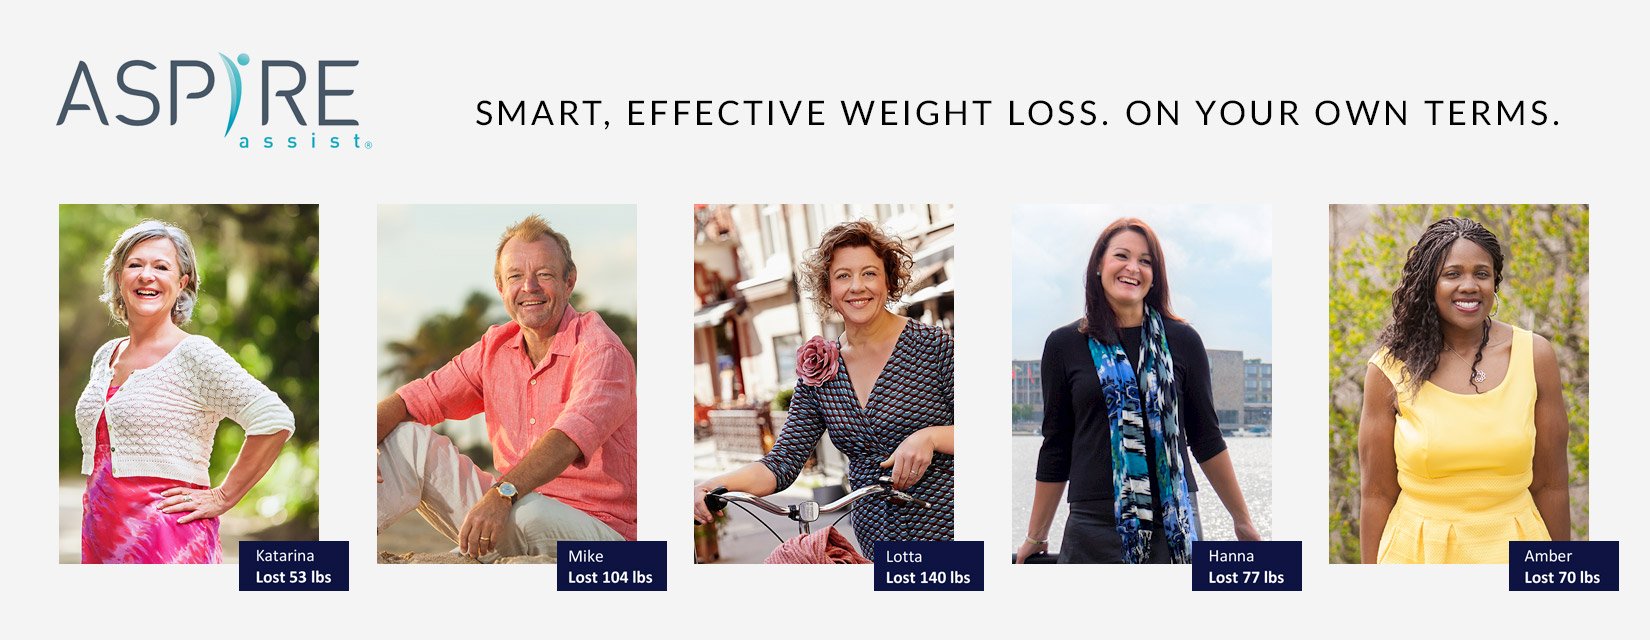 AspireAssist - Smart, effective weight loss. On your own terms.